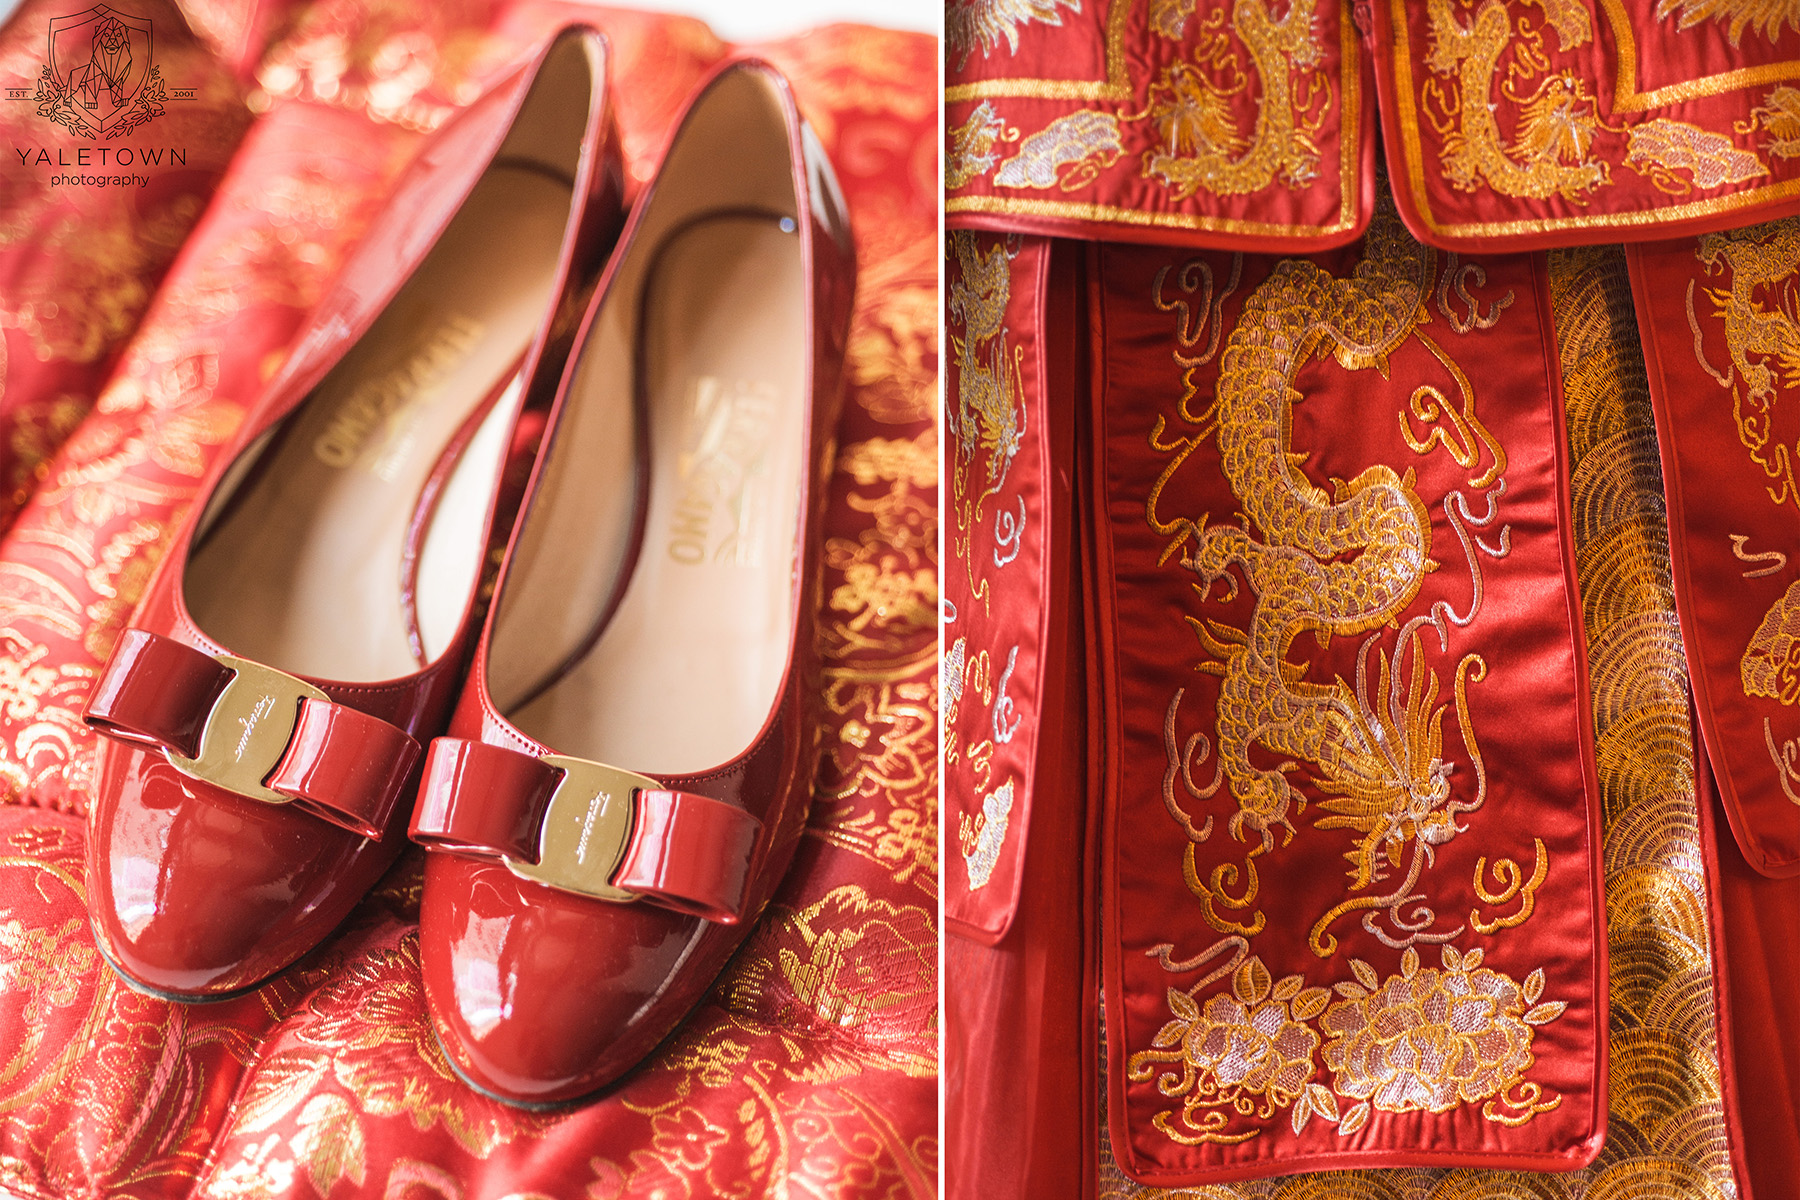 Chinese-Tea-Ceremony-Bridal-Shoes-Salvatore-Ferragamo-Gown-Rosewood-Hotel-Georgia-Vancouver-Wedding-Yaletown-Photography-photo